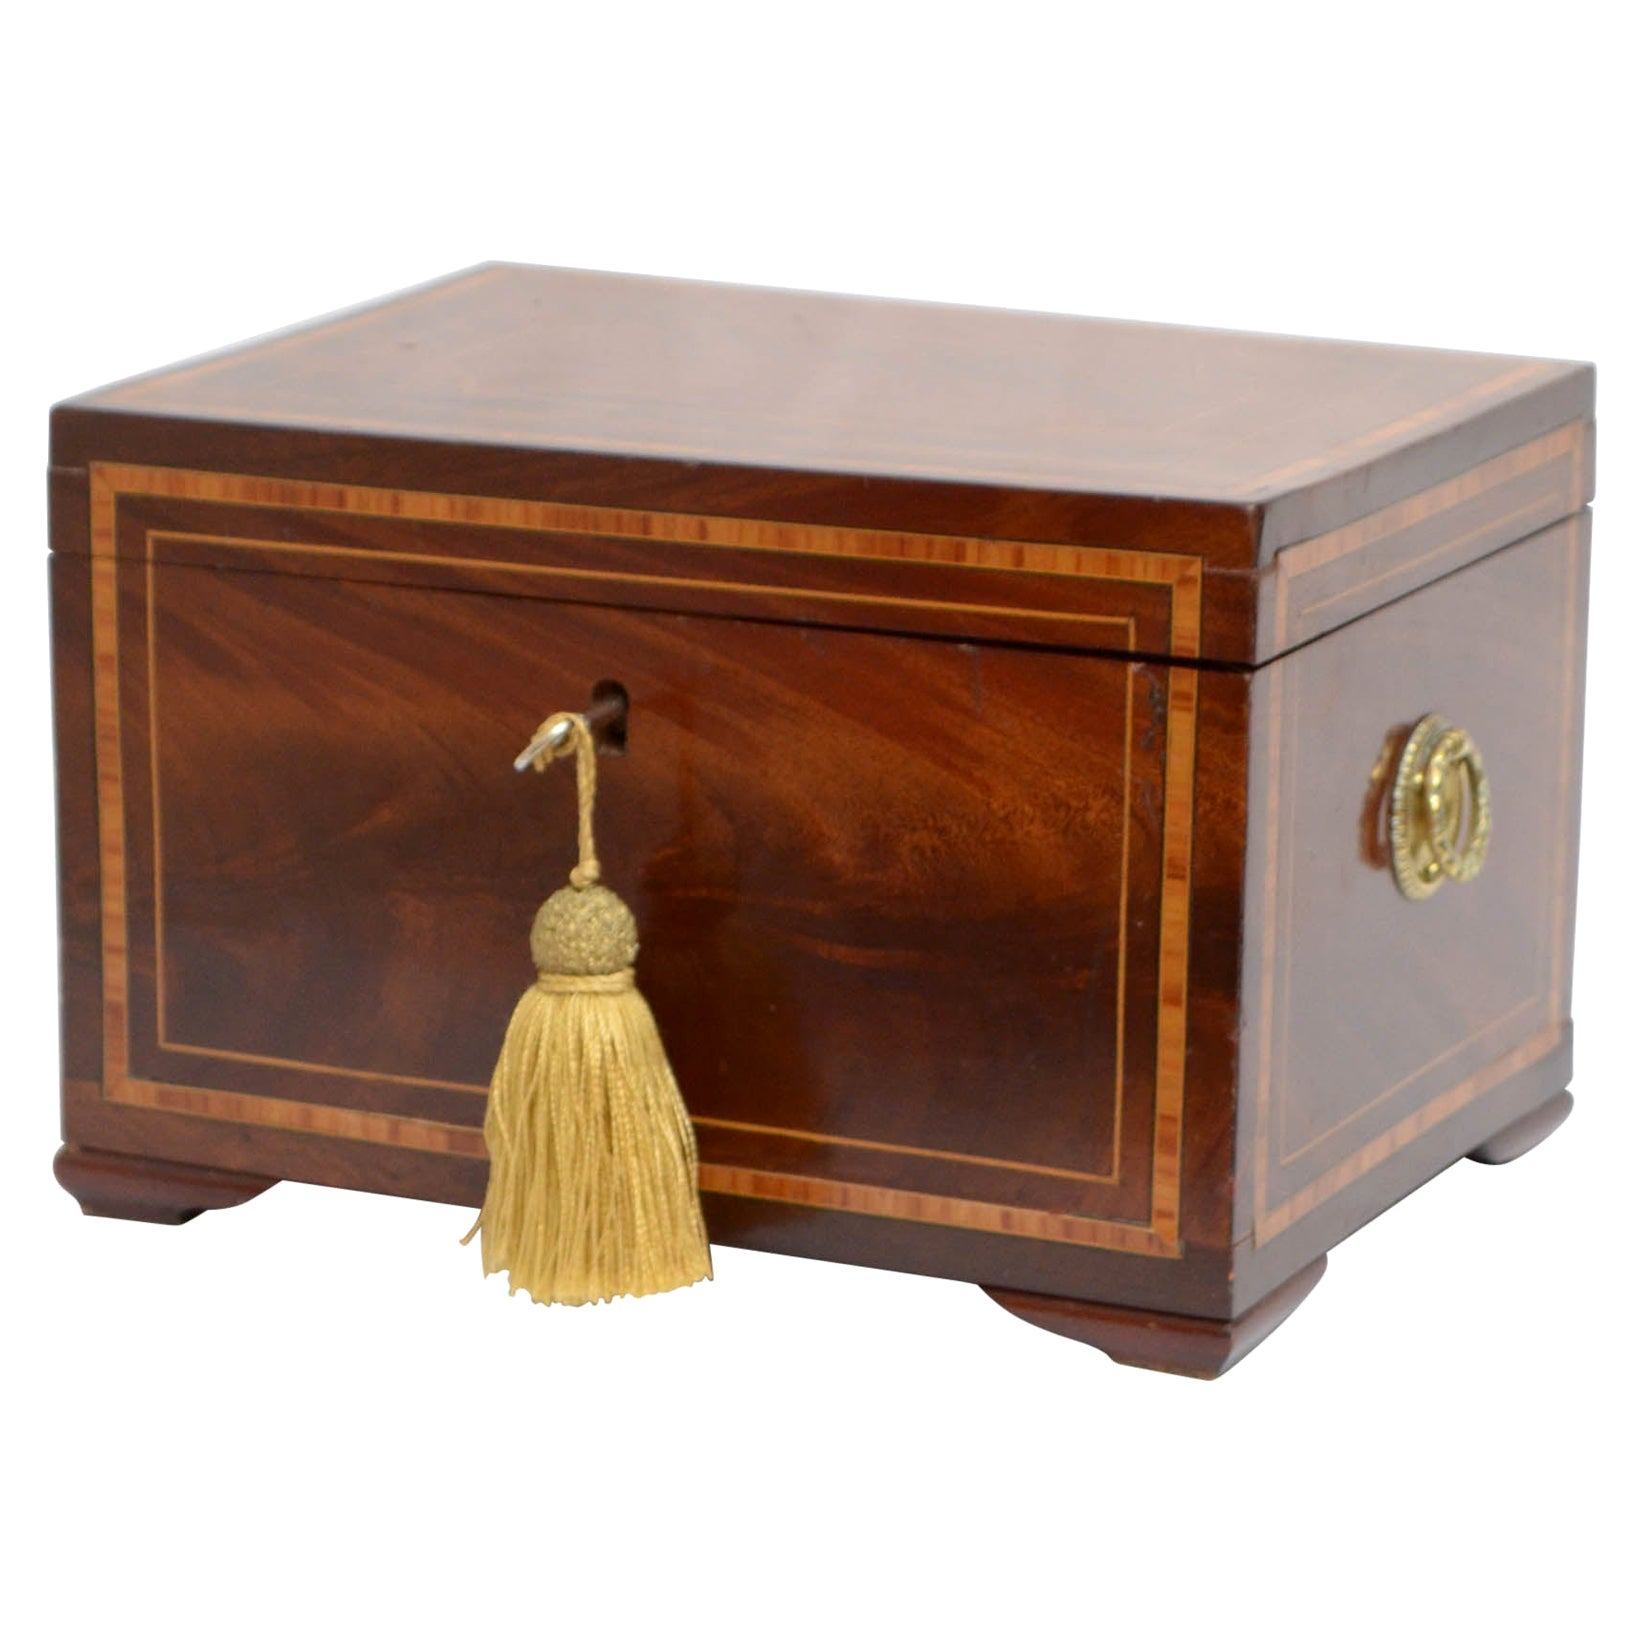 Georgian Mahogany Jewelry Box with Tray